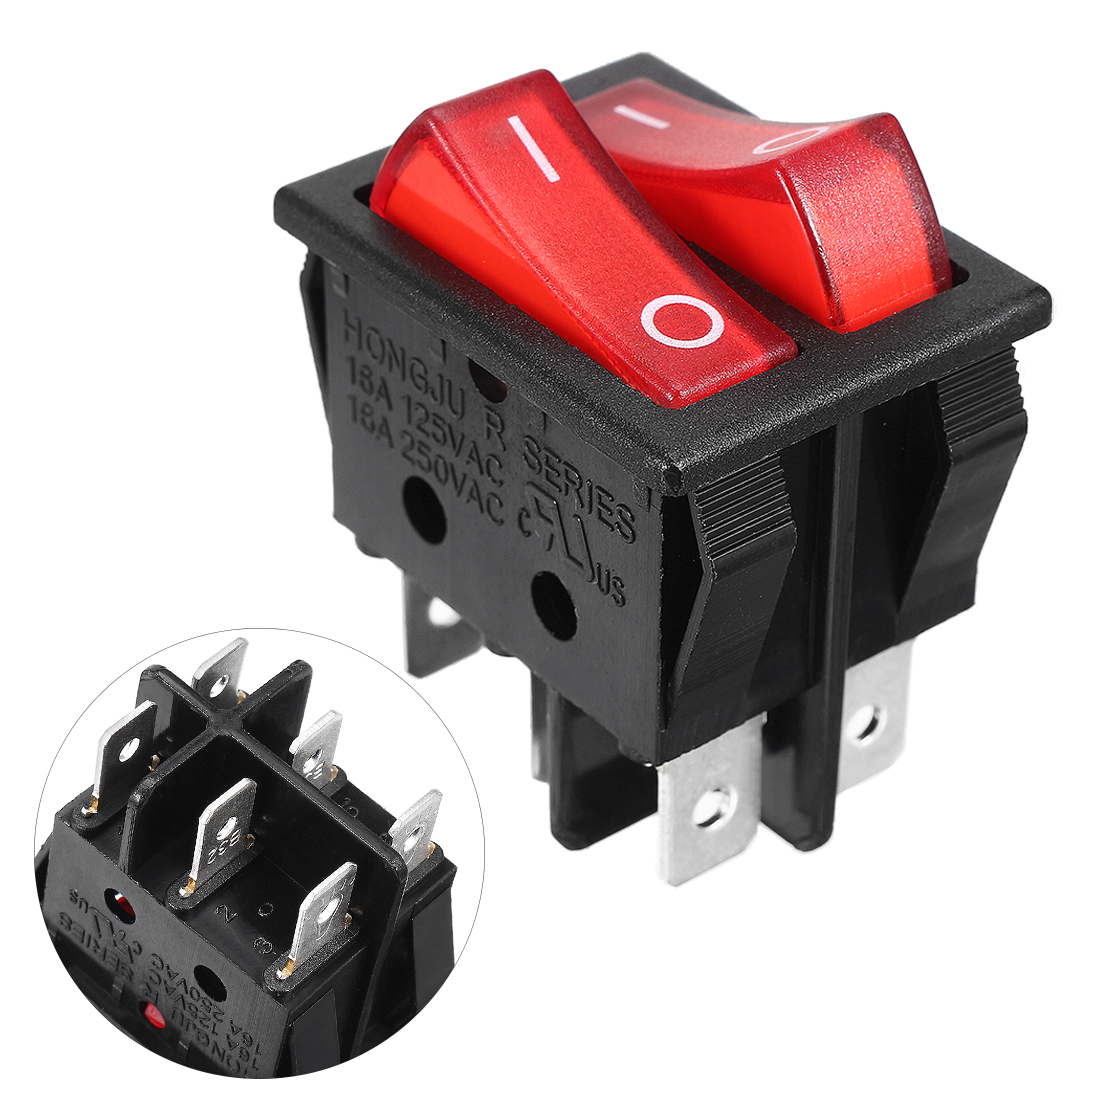 AC 16A/250V Double Red Light 6 Pin SPST ON/OFF Rocker Switch